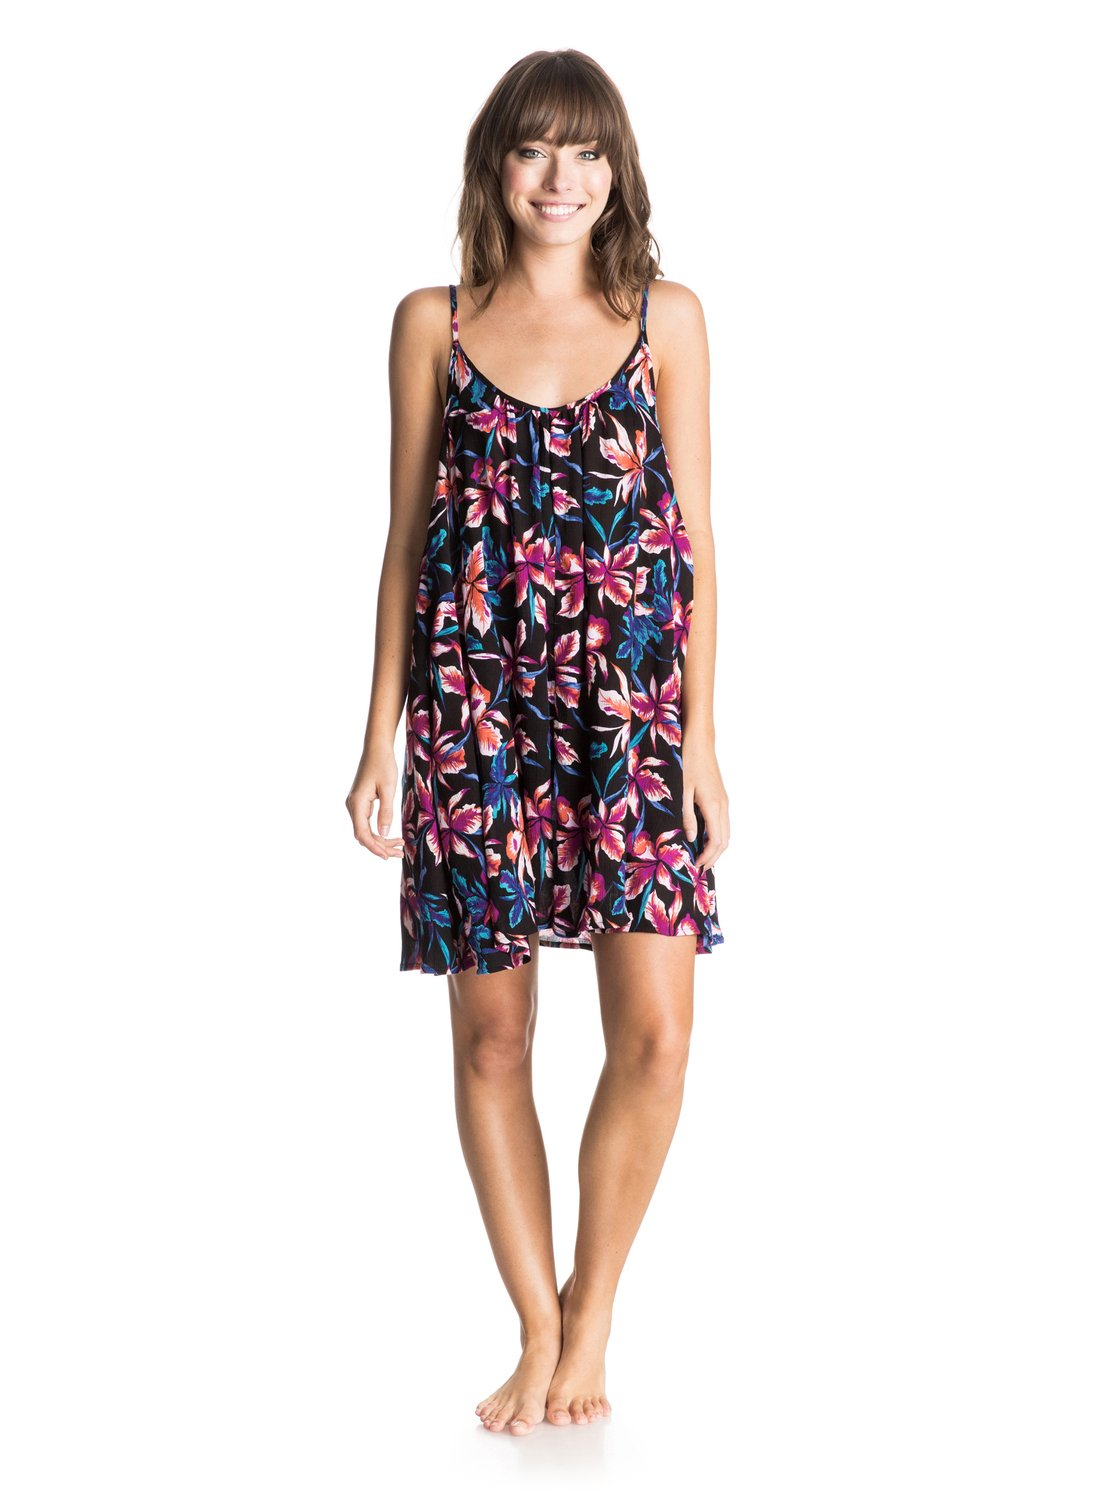 Windy Fly Away Print Cover Up Dress